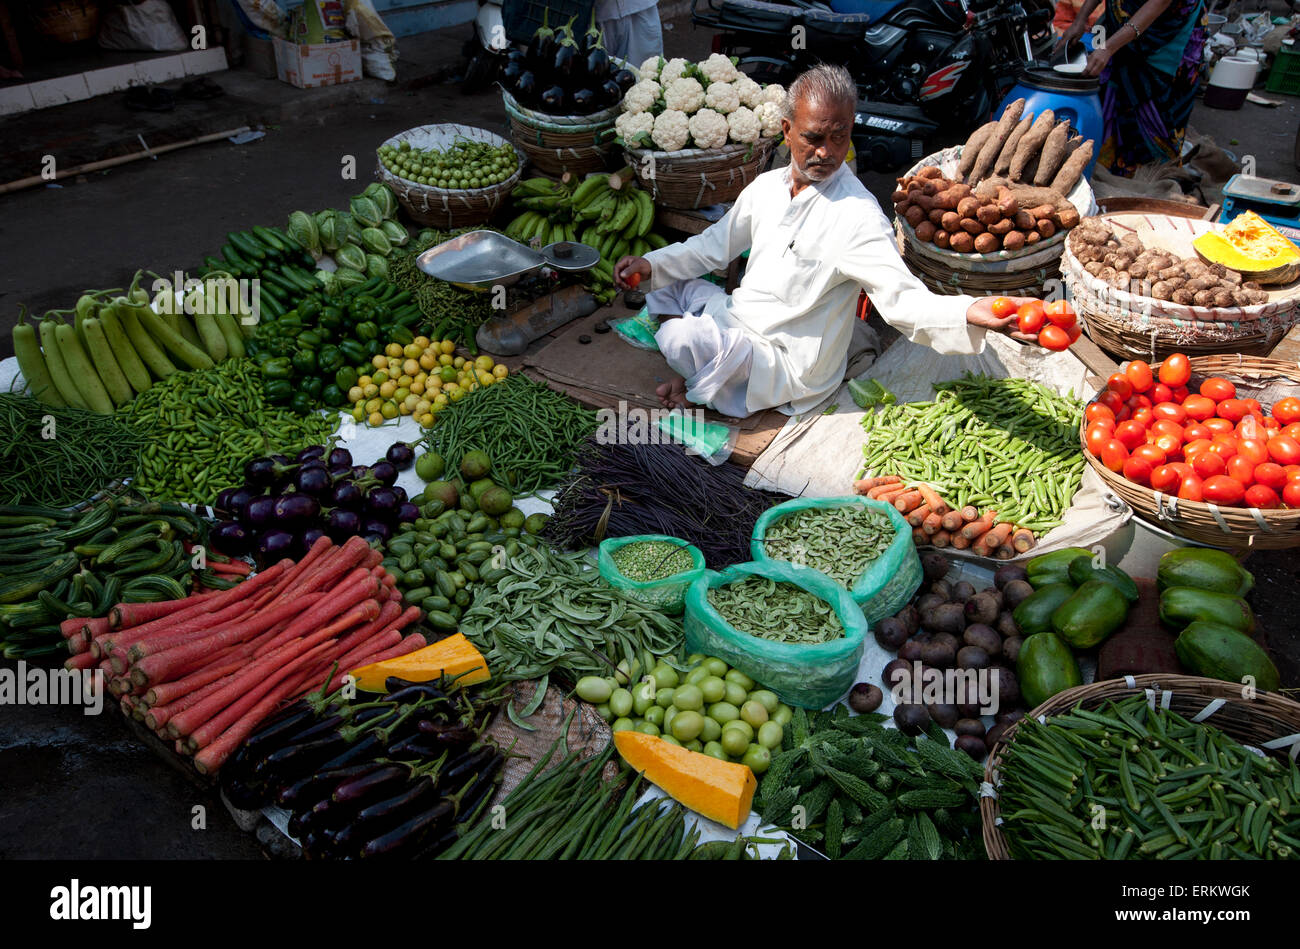 Subji wallah (vegetable seller) sitting at his beautifully laid out vegetable stall in the market, Ahmedabad, Gujarat, - Stock Image